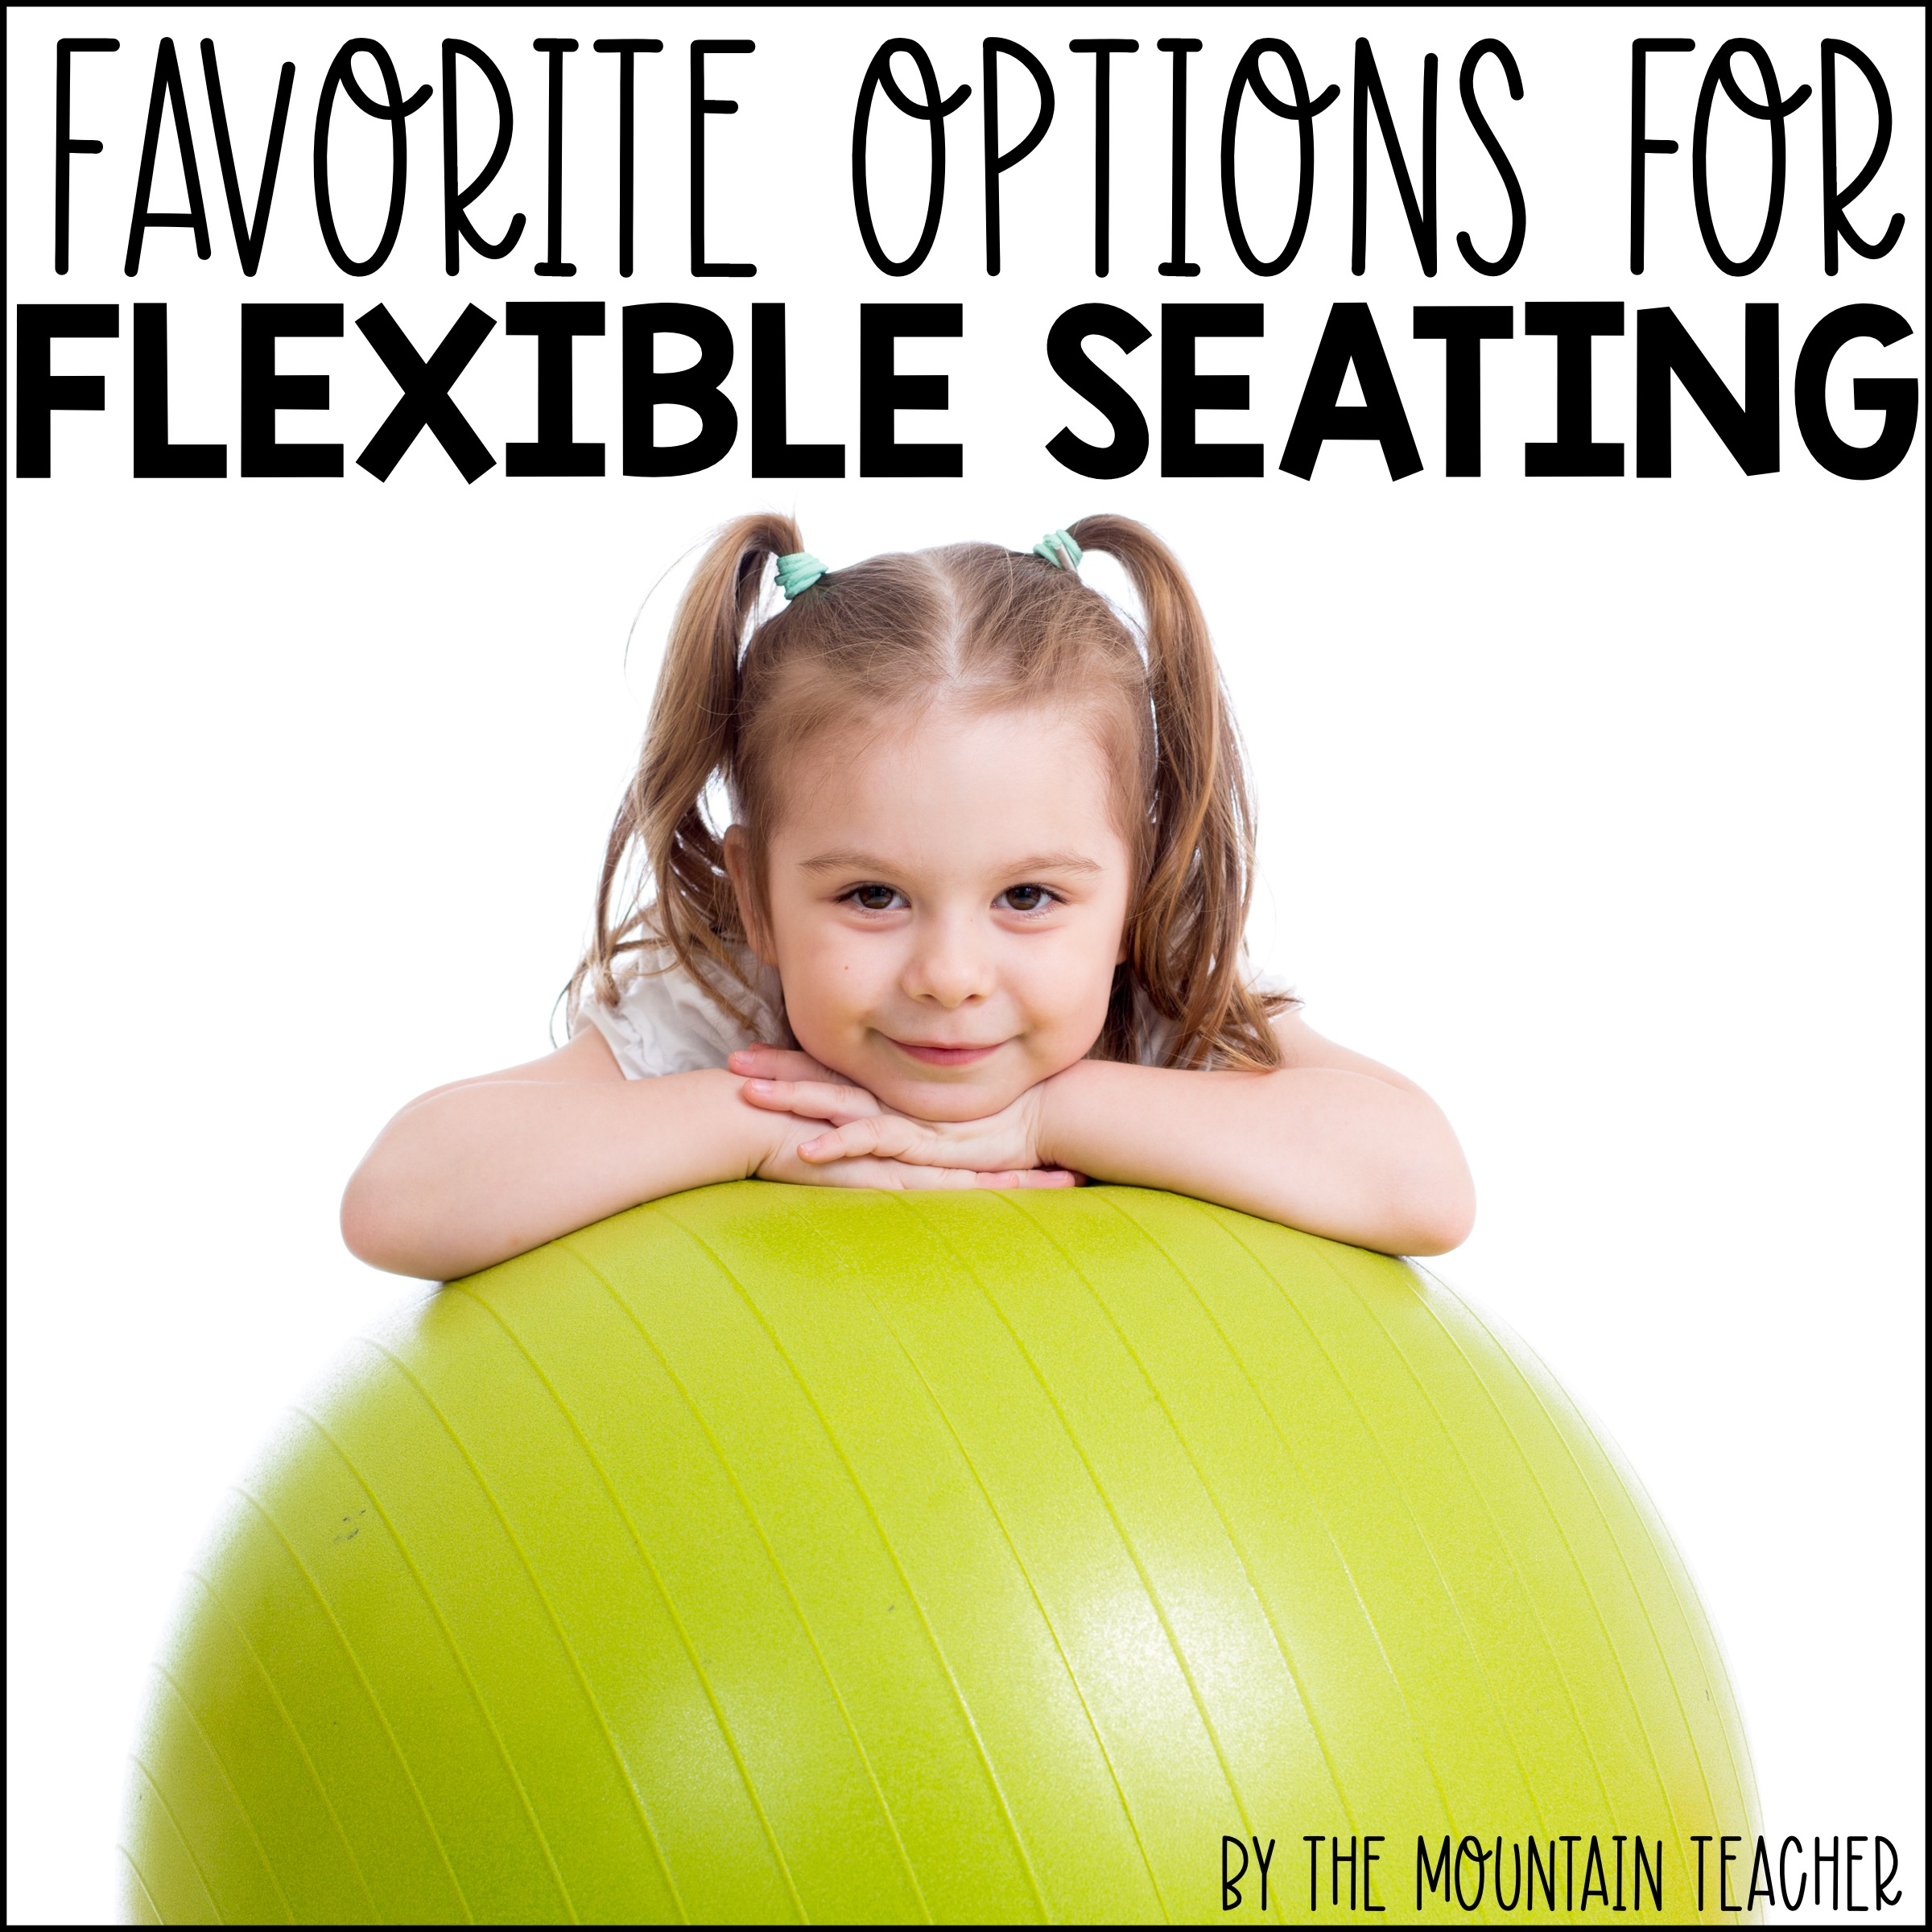 Flexible Seating Favorites and Ideas for Elementary Classrooms